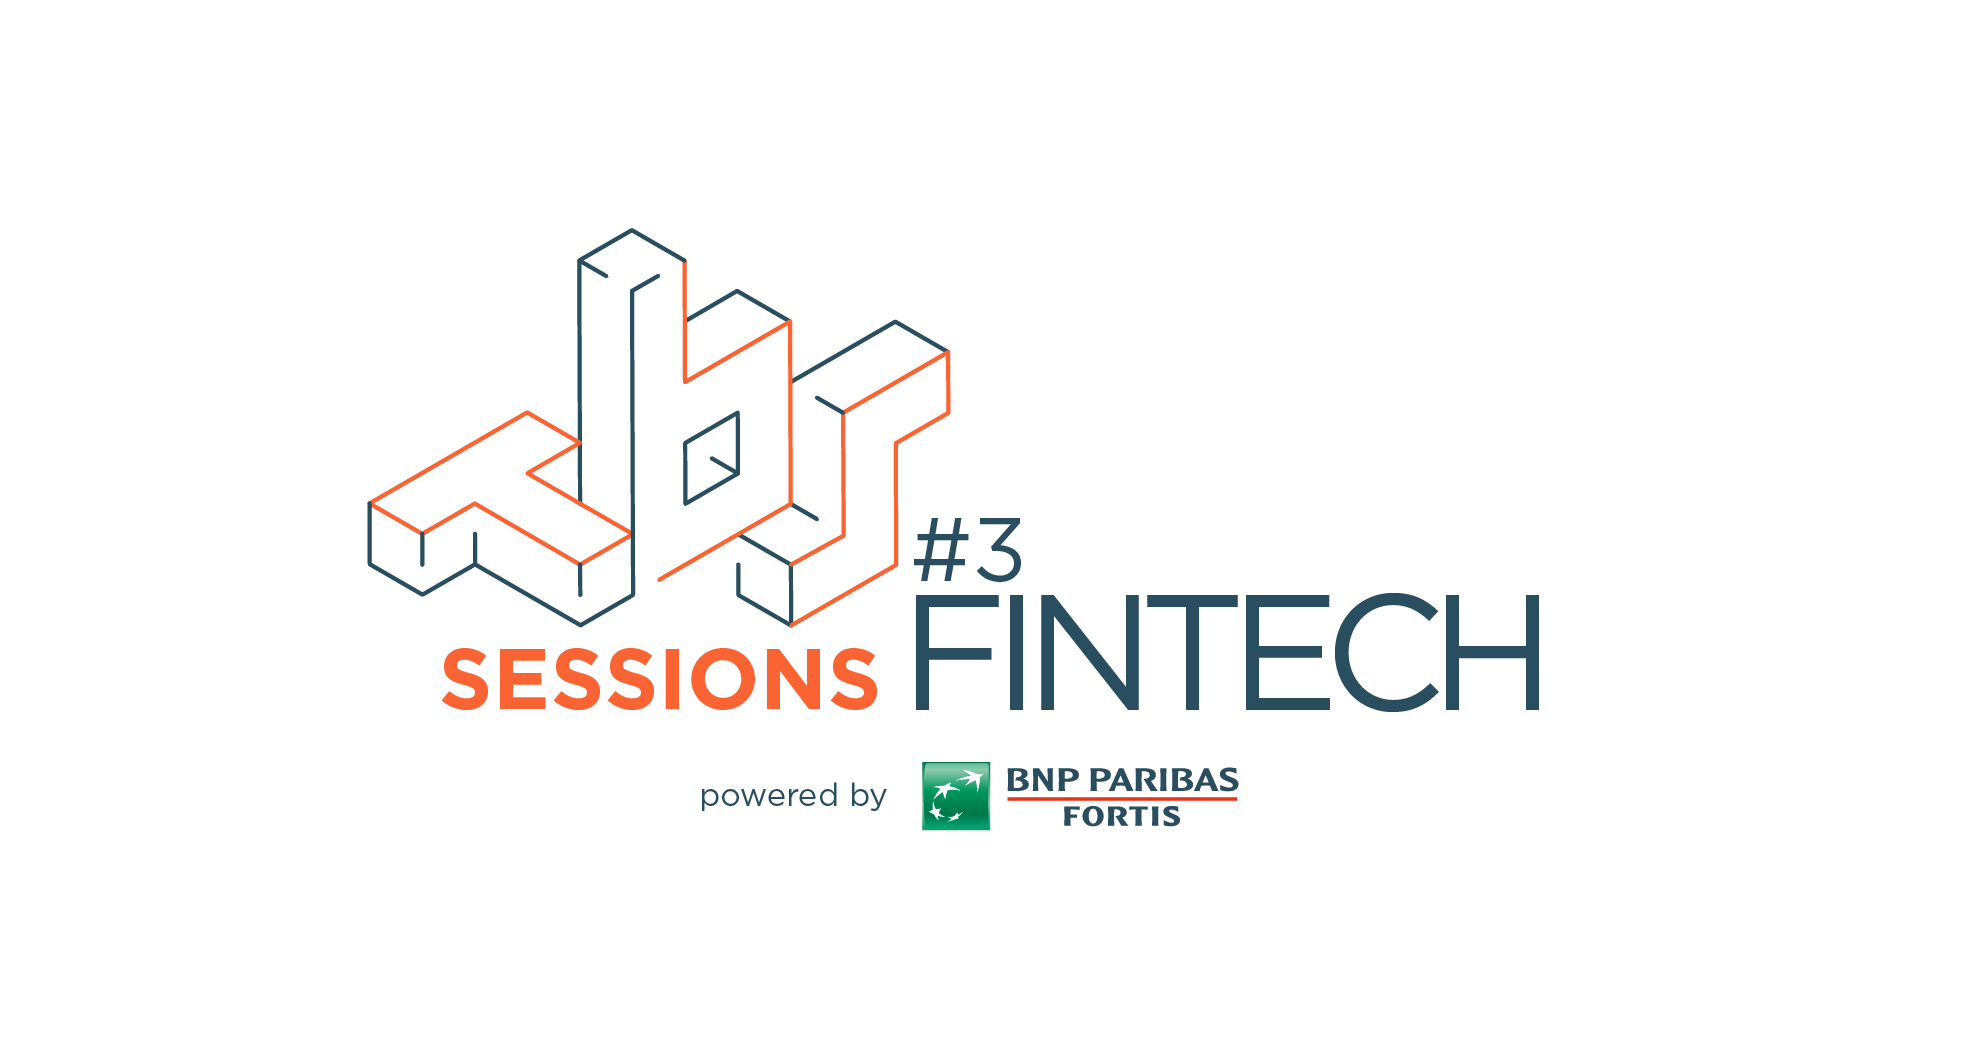 The Big Score Session #3 FinTech